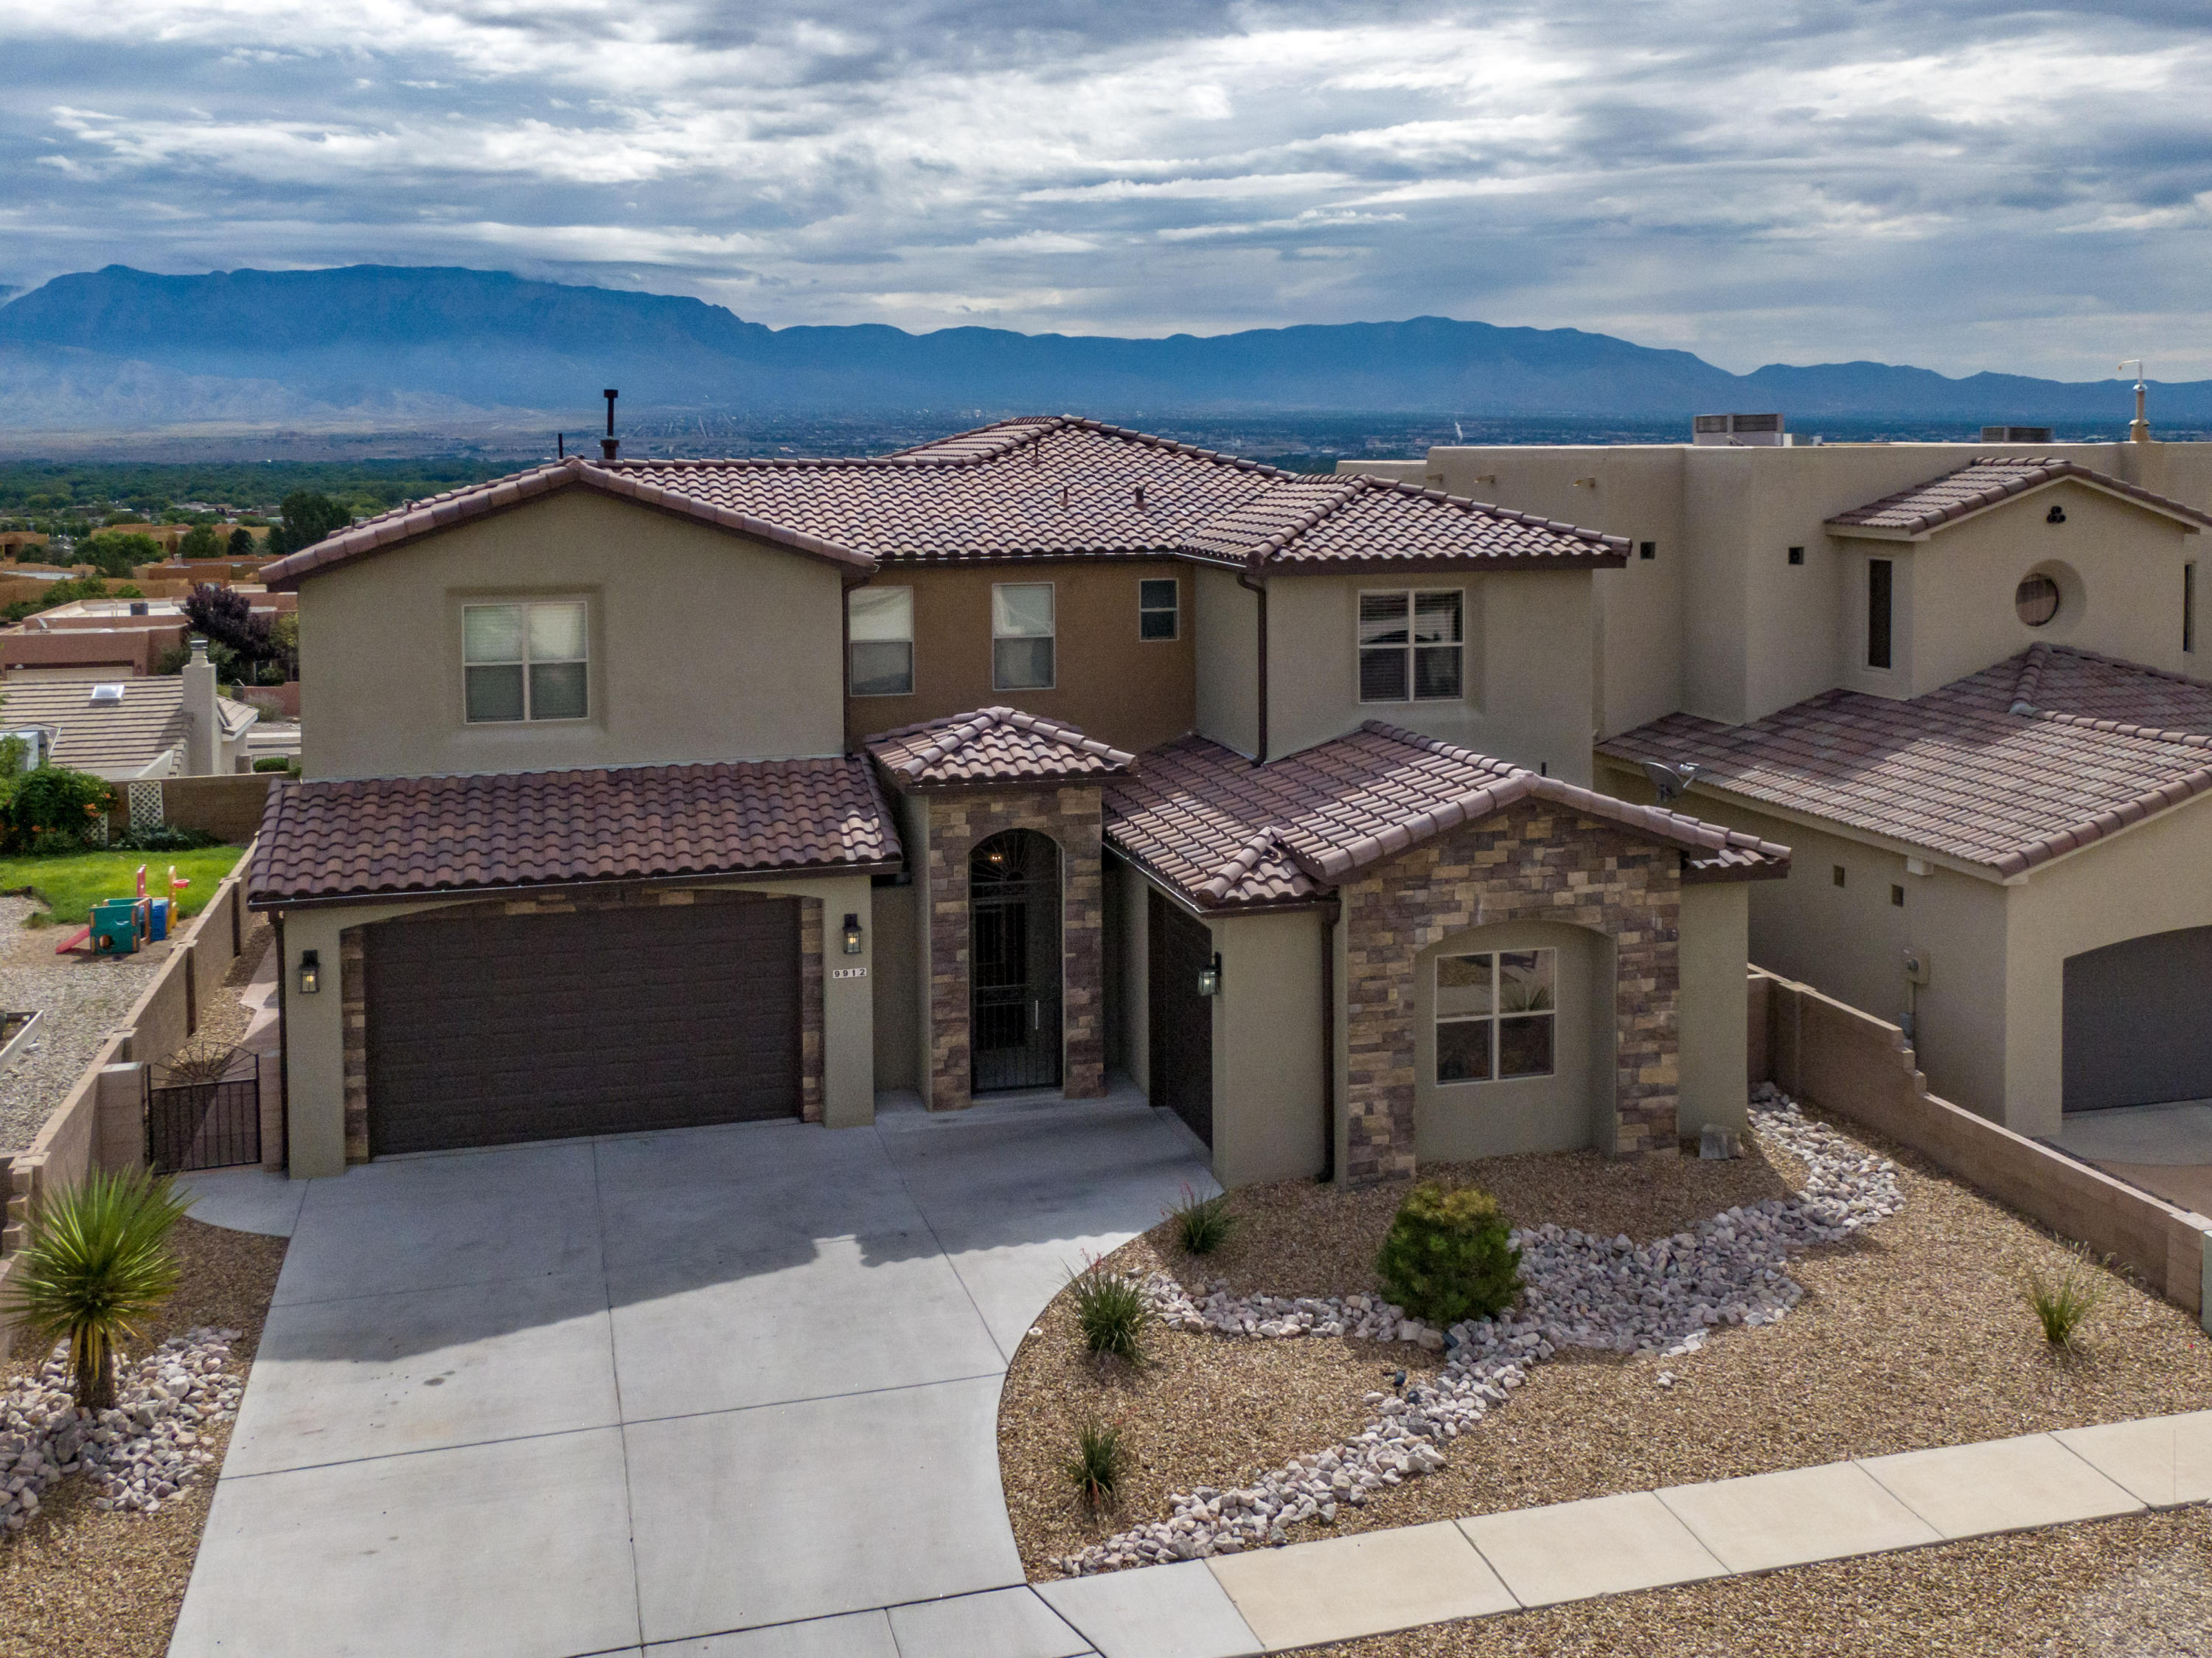 VIEWS, VIEWS, VIEWS!!!! Take a look at this stunning CUSTOM home on a desirable location with breathtaking views of the Sandia Mountains. This home offers a wonderful floor plan: two master bedrooms (one on each level), two large living spaces, a formal dining room, and a HUGE loft upstairs with an amazing balcony. The Chef's kitchen features a huge island, granite countertops, stainless steel appliances and walk-in pantry. Four full bathrooms, each with its own style but sharing the same high-quality tile and stone.  This home is located in the Knolls area, close to the schools, shopping centers, great restaurants and a movie theater. Schedule a showing today!  You don't want to miss the opportunity to own this amazing home!